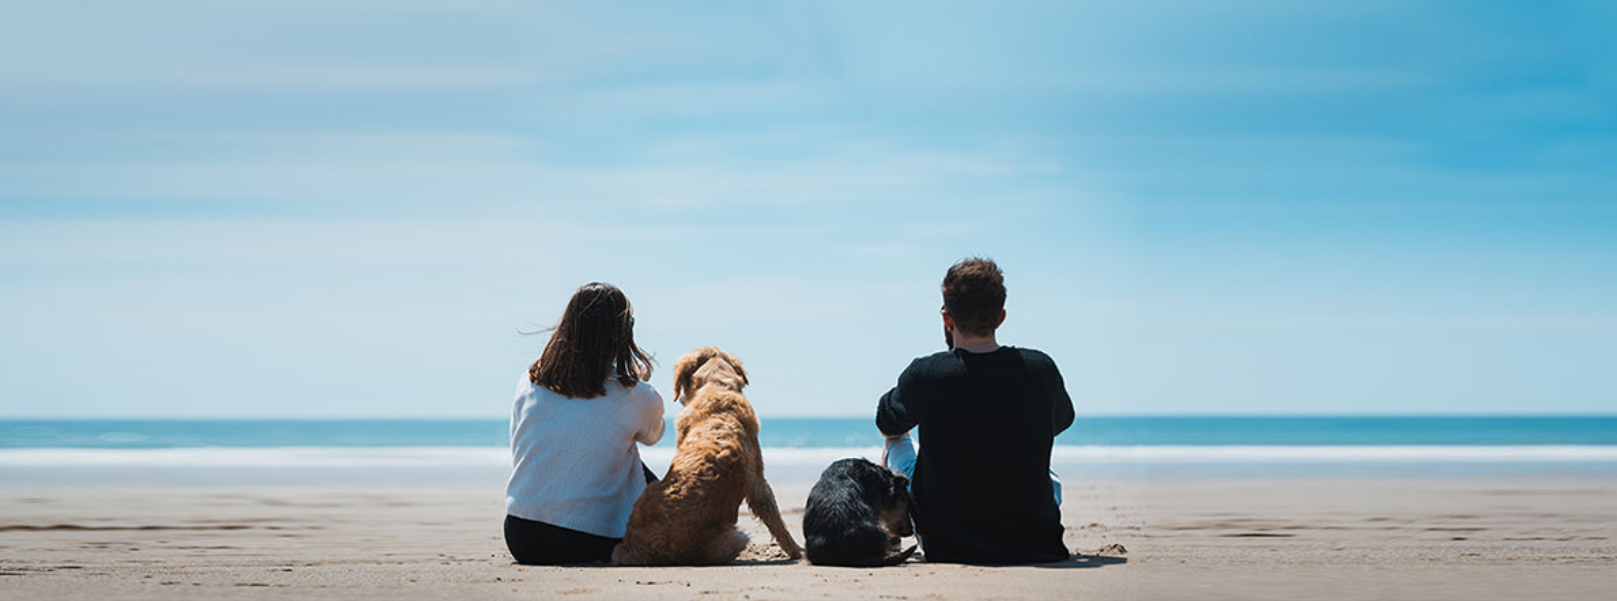 couple-and-dog-at-beach-banner